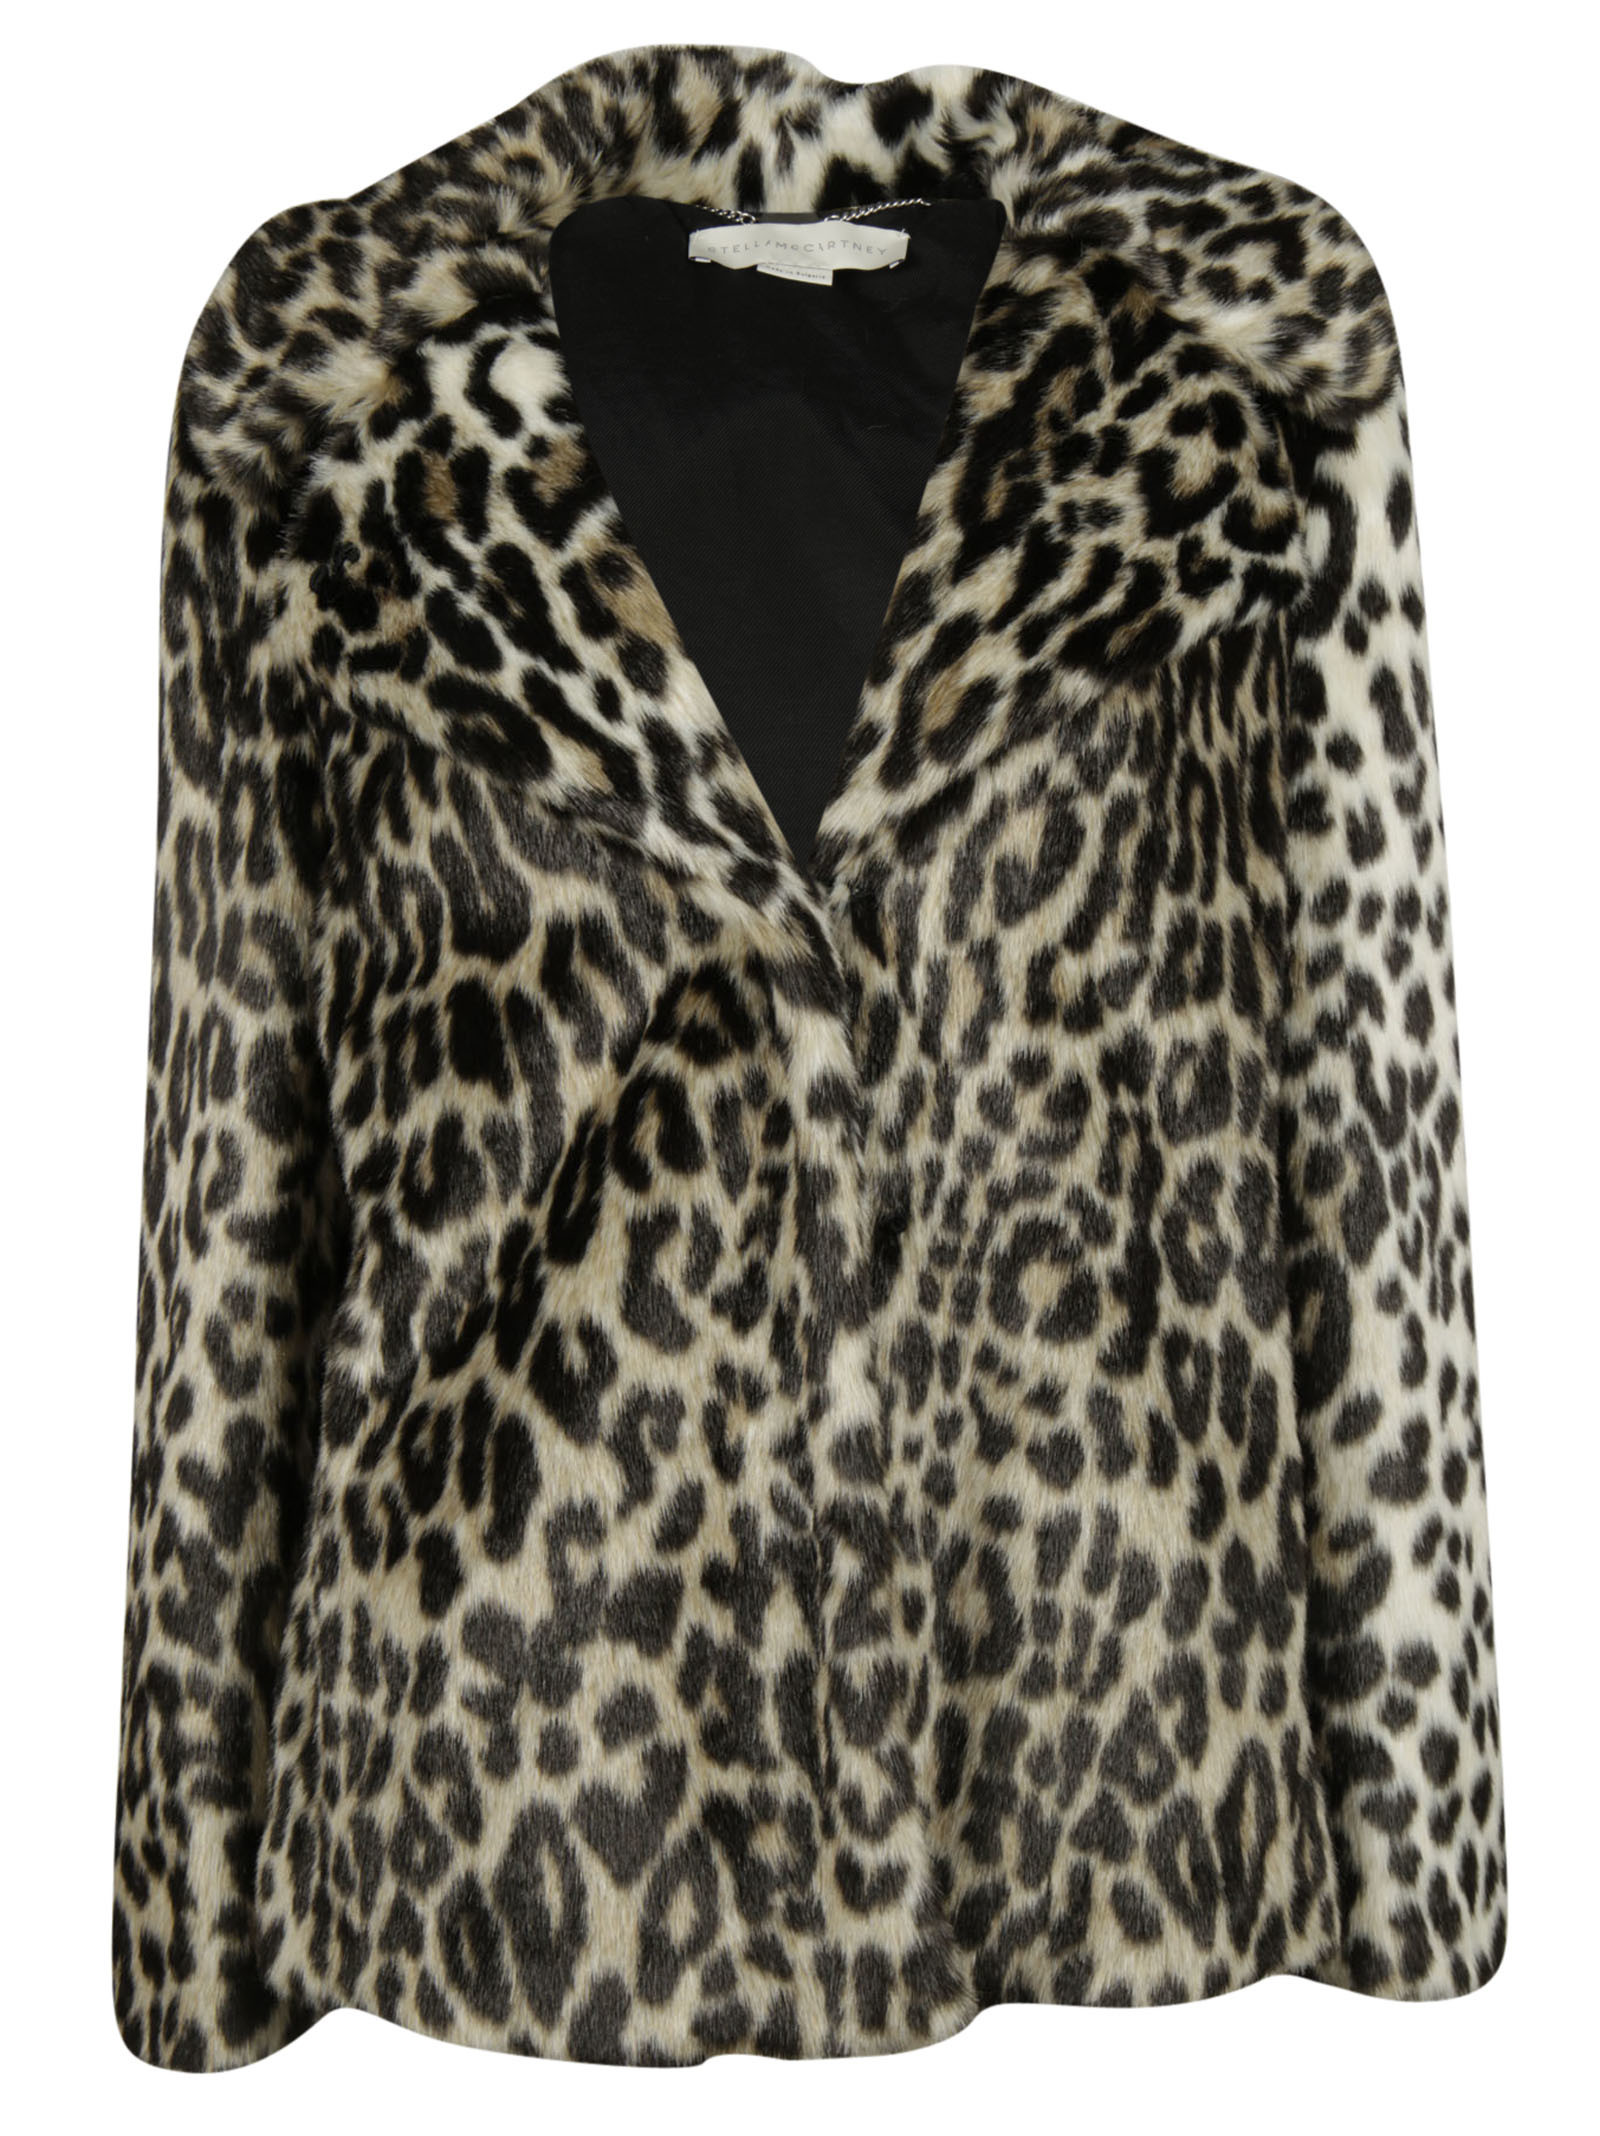 Leopard Print Dan Coat from Stella McCartney: Beige/Black Leopard Print Dan Coat with peaked lapels, front hook and eye lock, side pockets, long sleeves and straight edge.